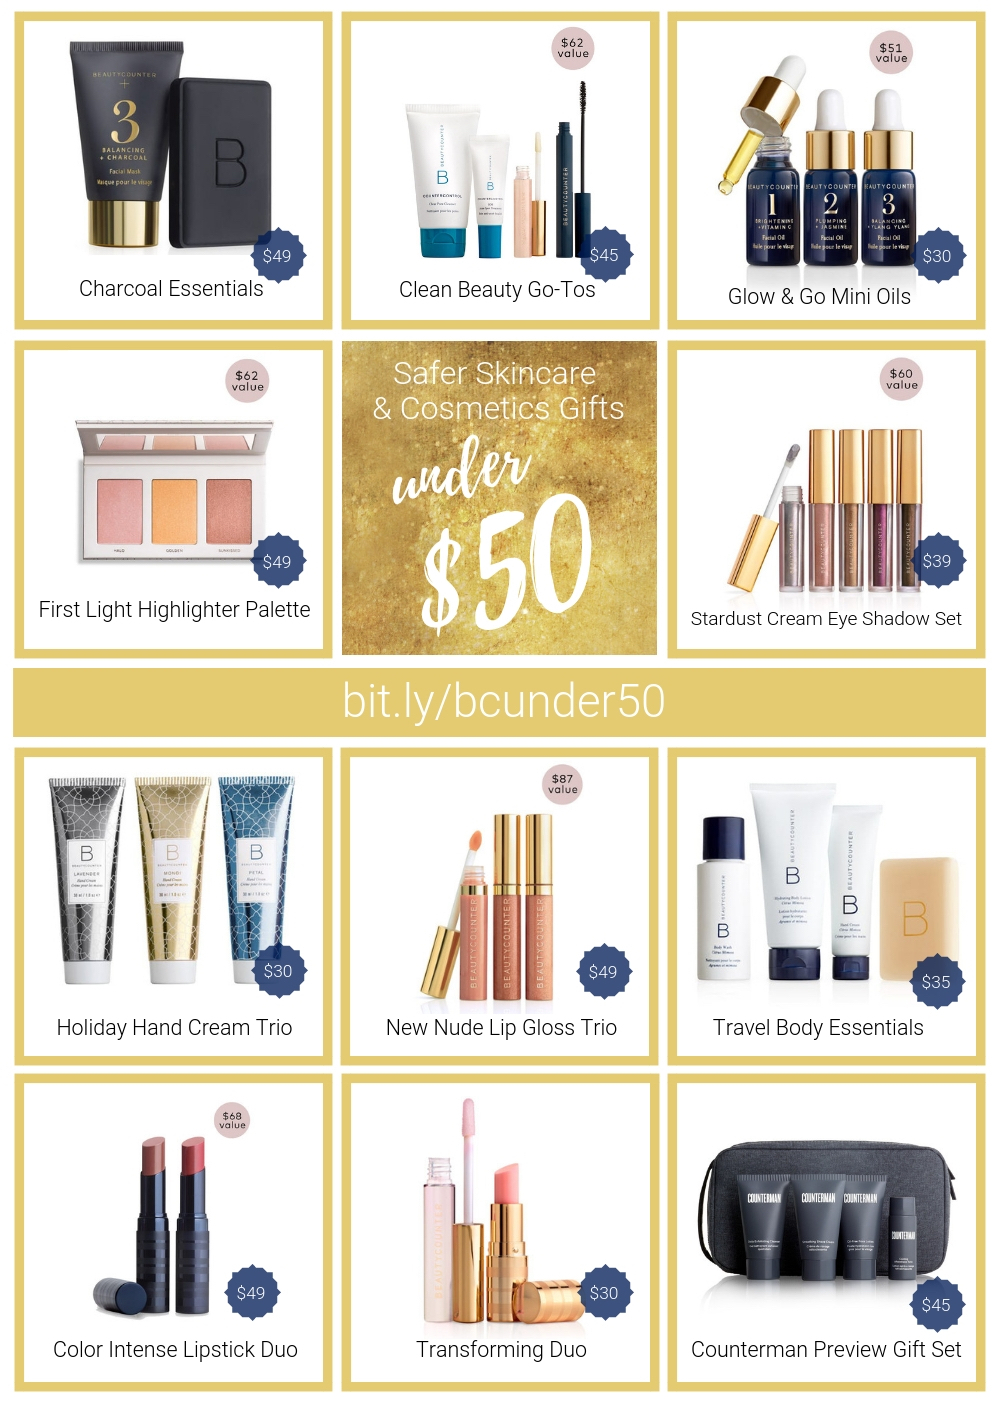 beautycounter holiday gift sets under $50